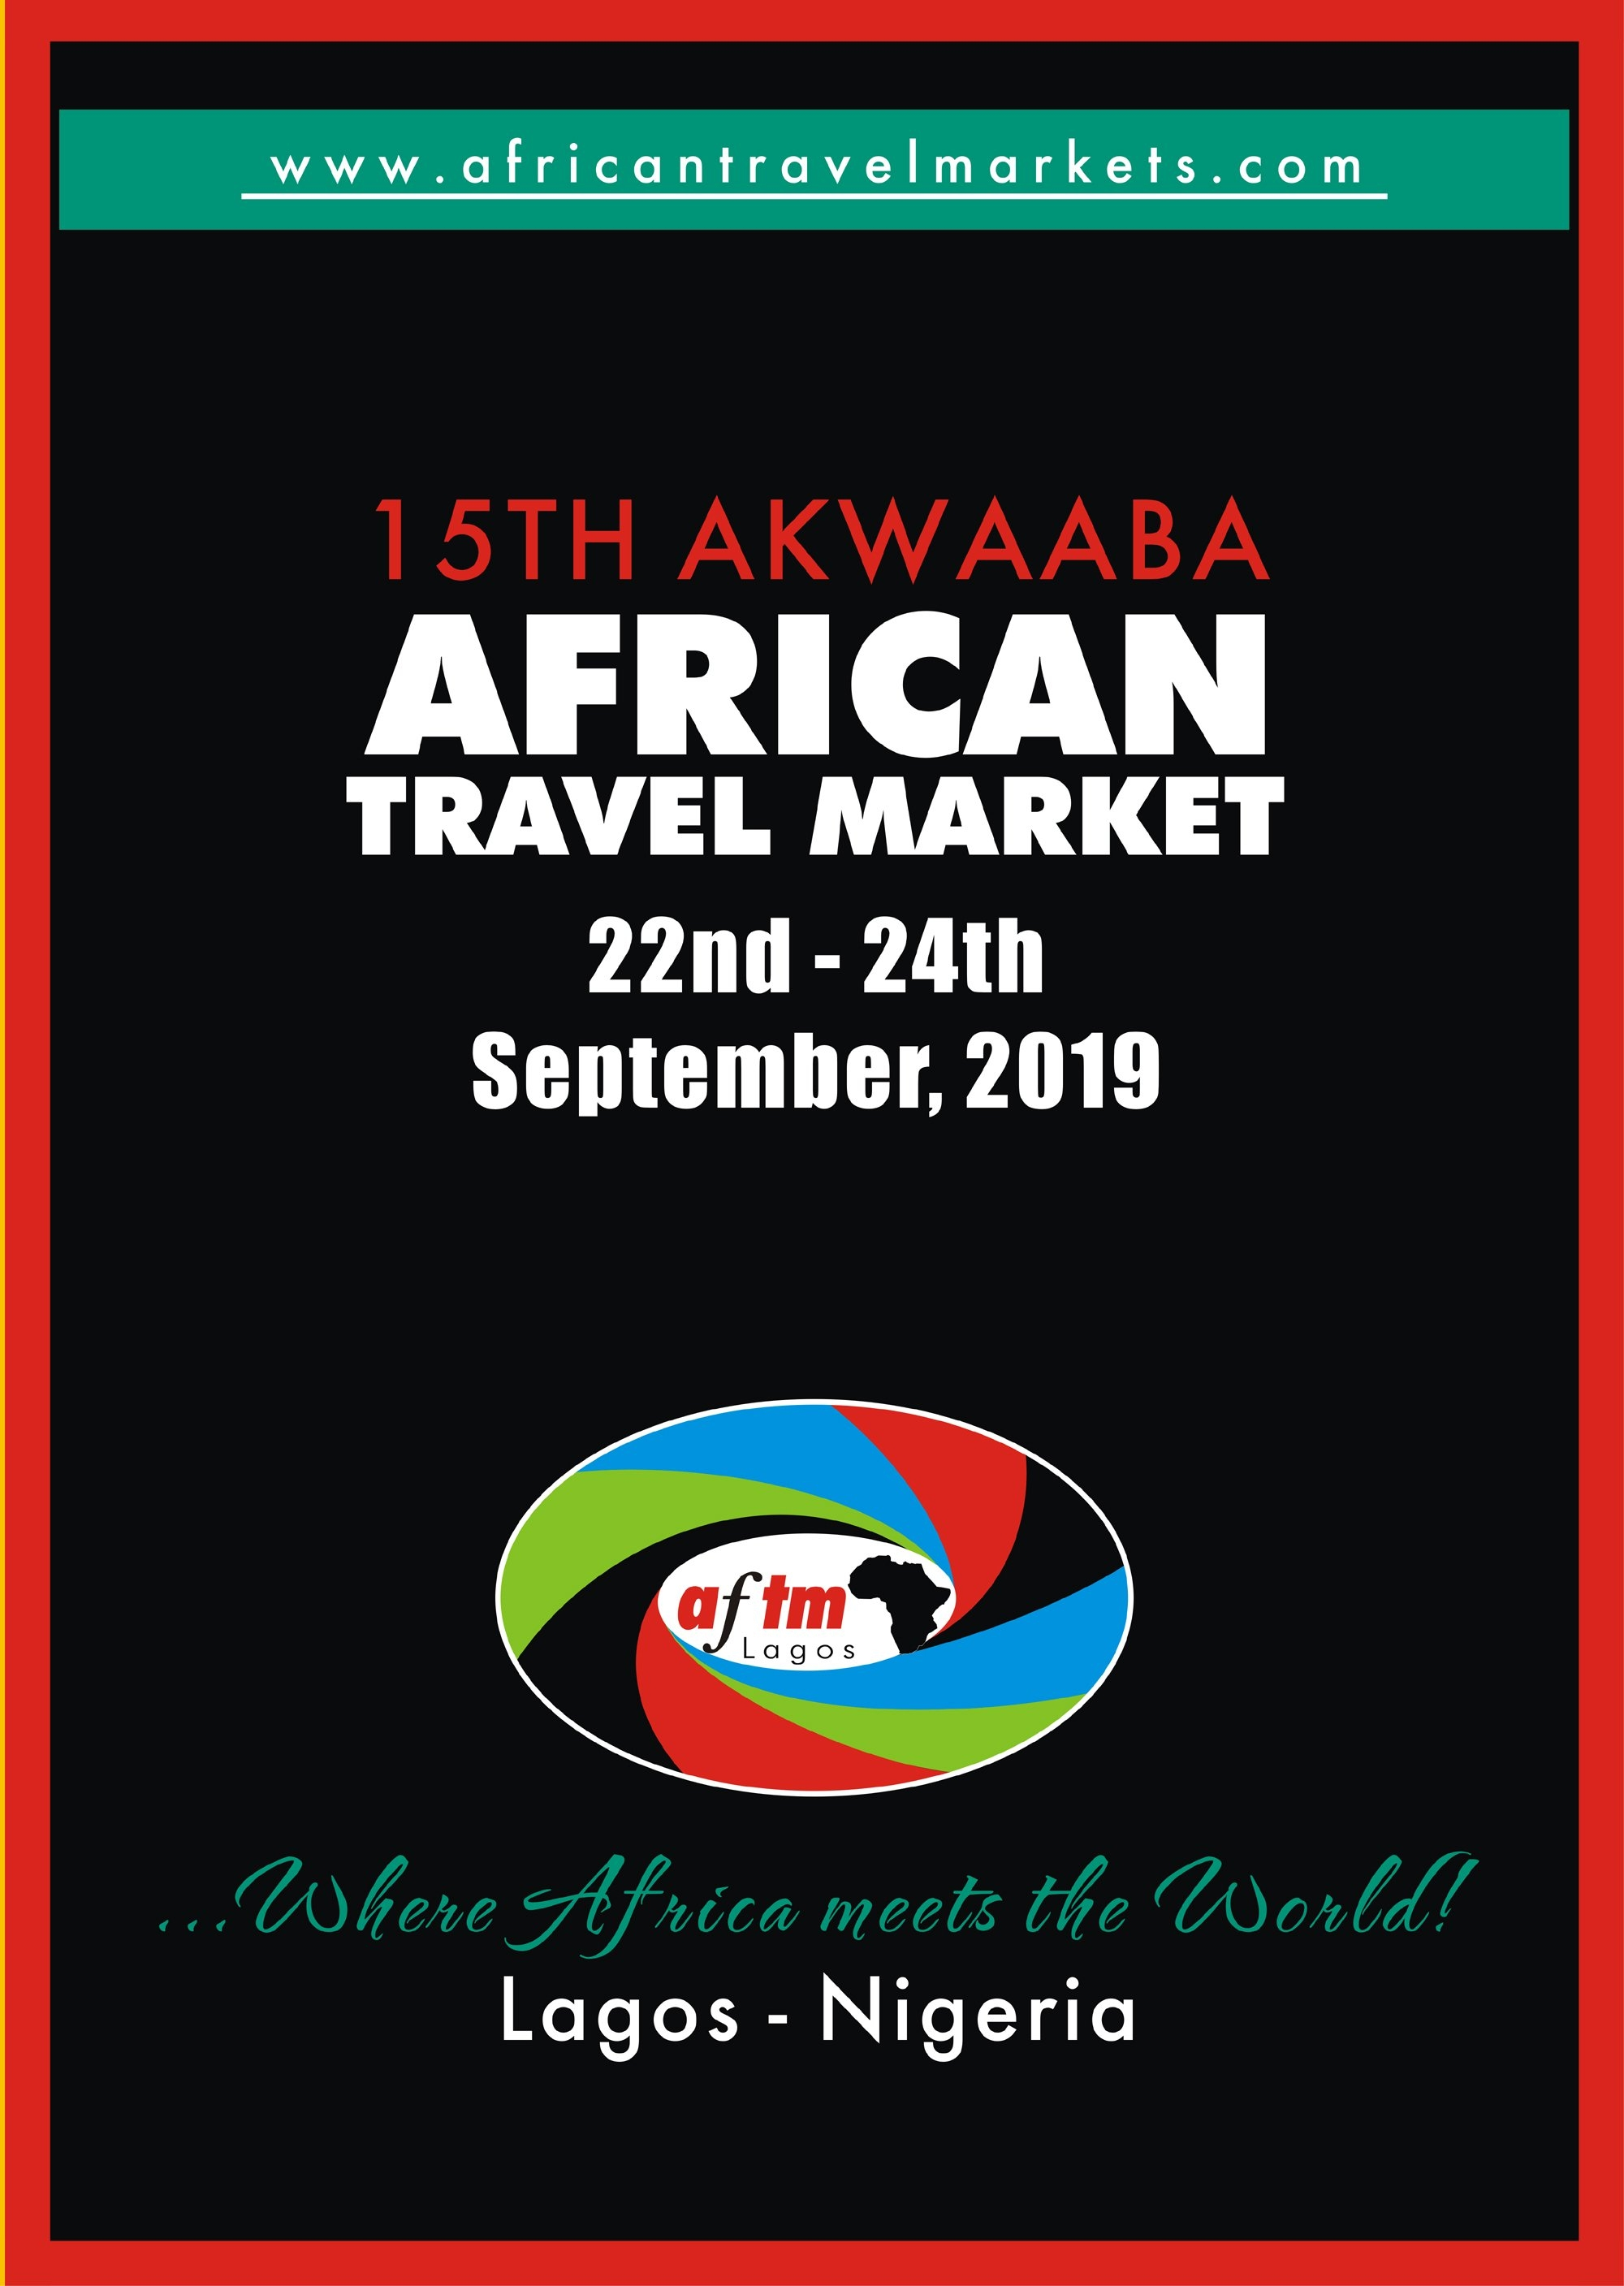 Calendar Of Event For 2019 - Akwaaba Calendar 2019 Nigeria